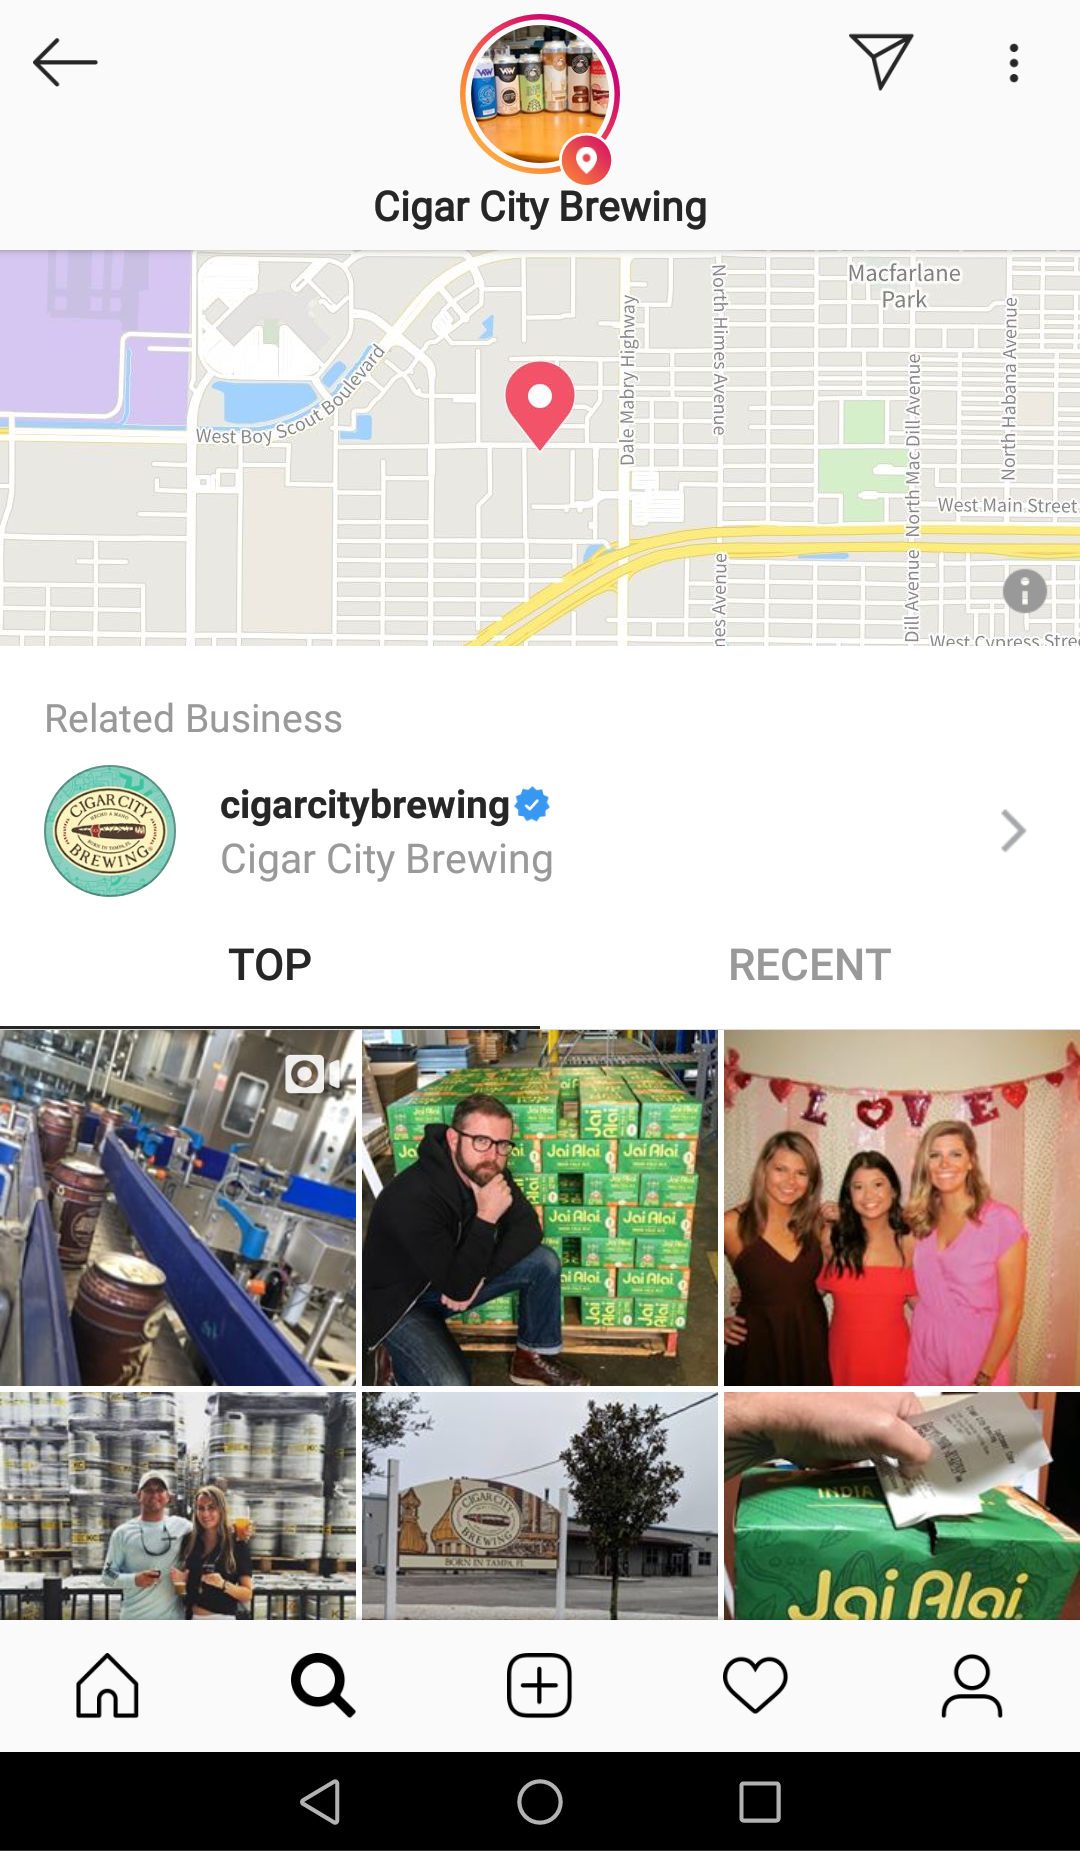 Location tagging is essential to location Instagram promotion